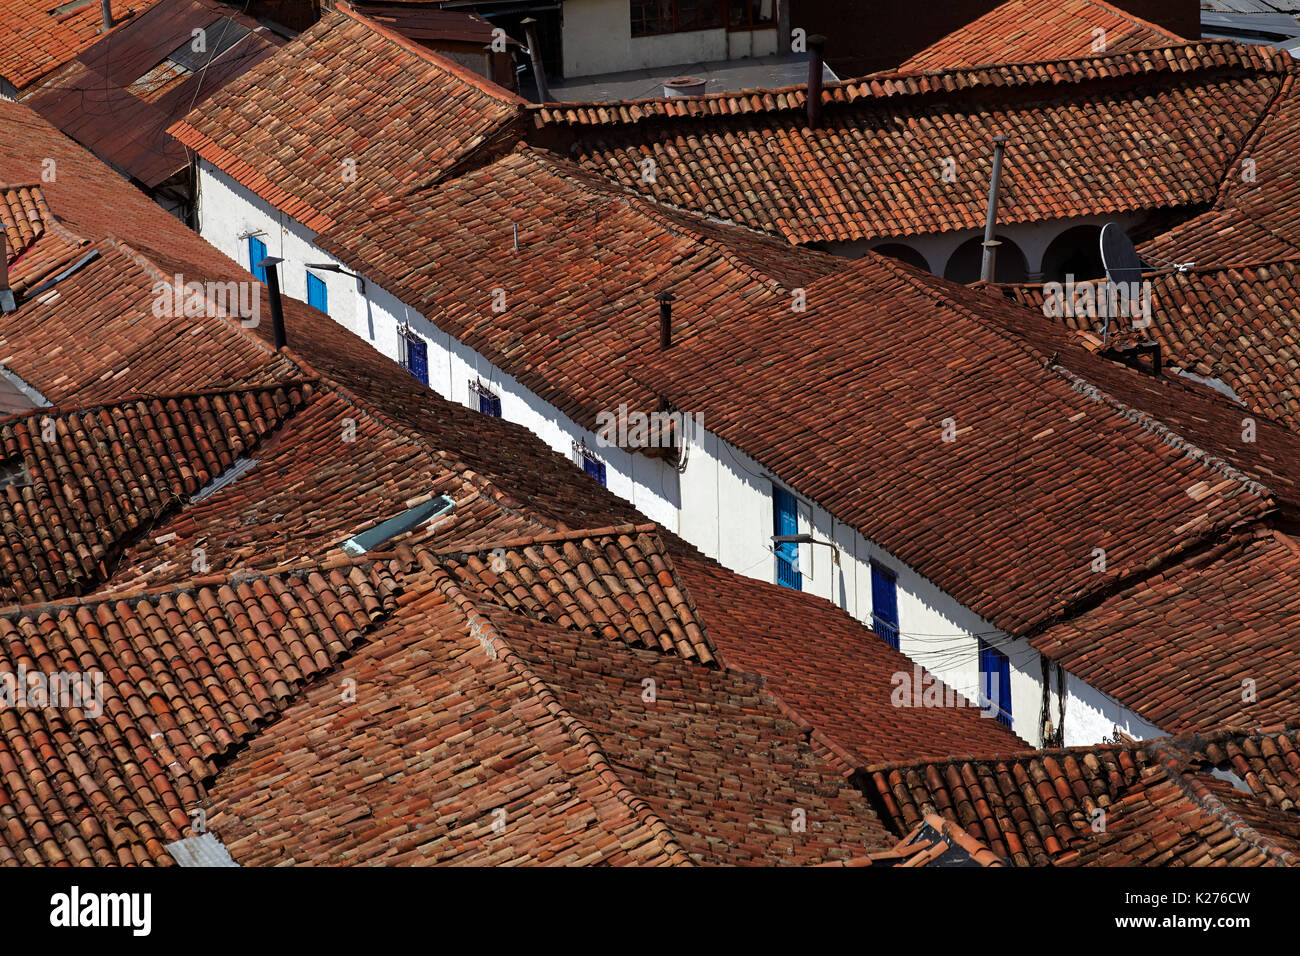 Terracotta tiled roofs along Procuradores, Cusco (World Heritage Site), Peru, South America - Stock Image